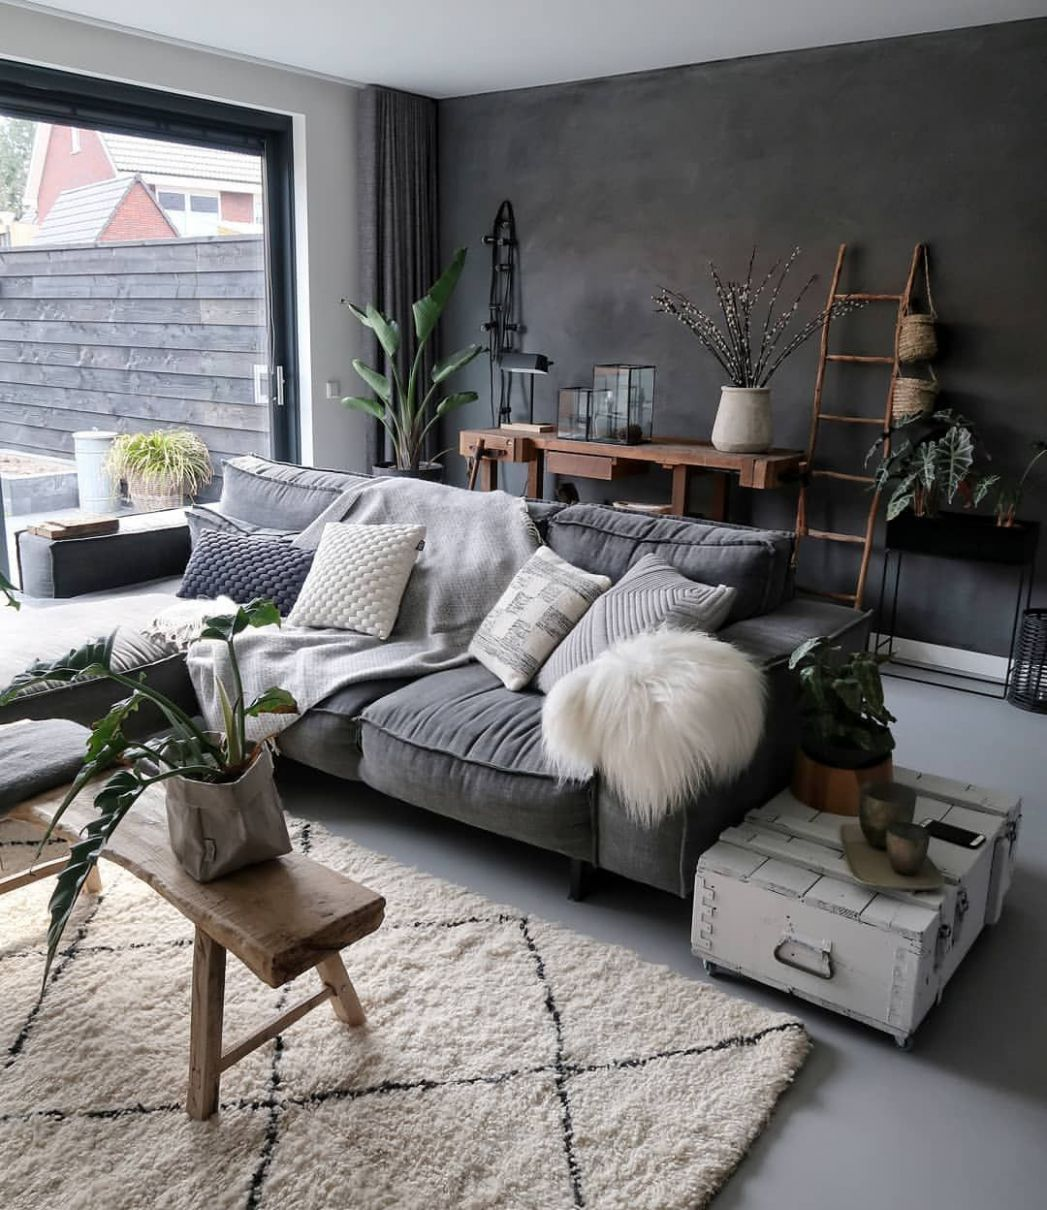 Charismatic Dark Living Room Design Ideas with Their Magic Spell ..